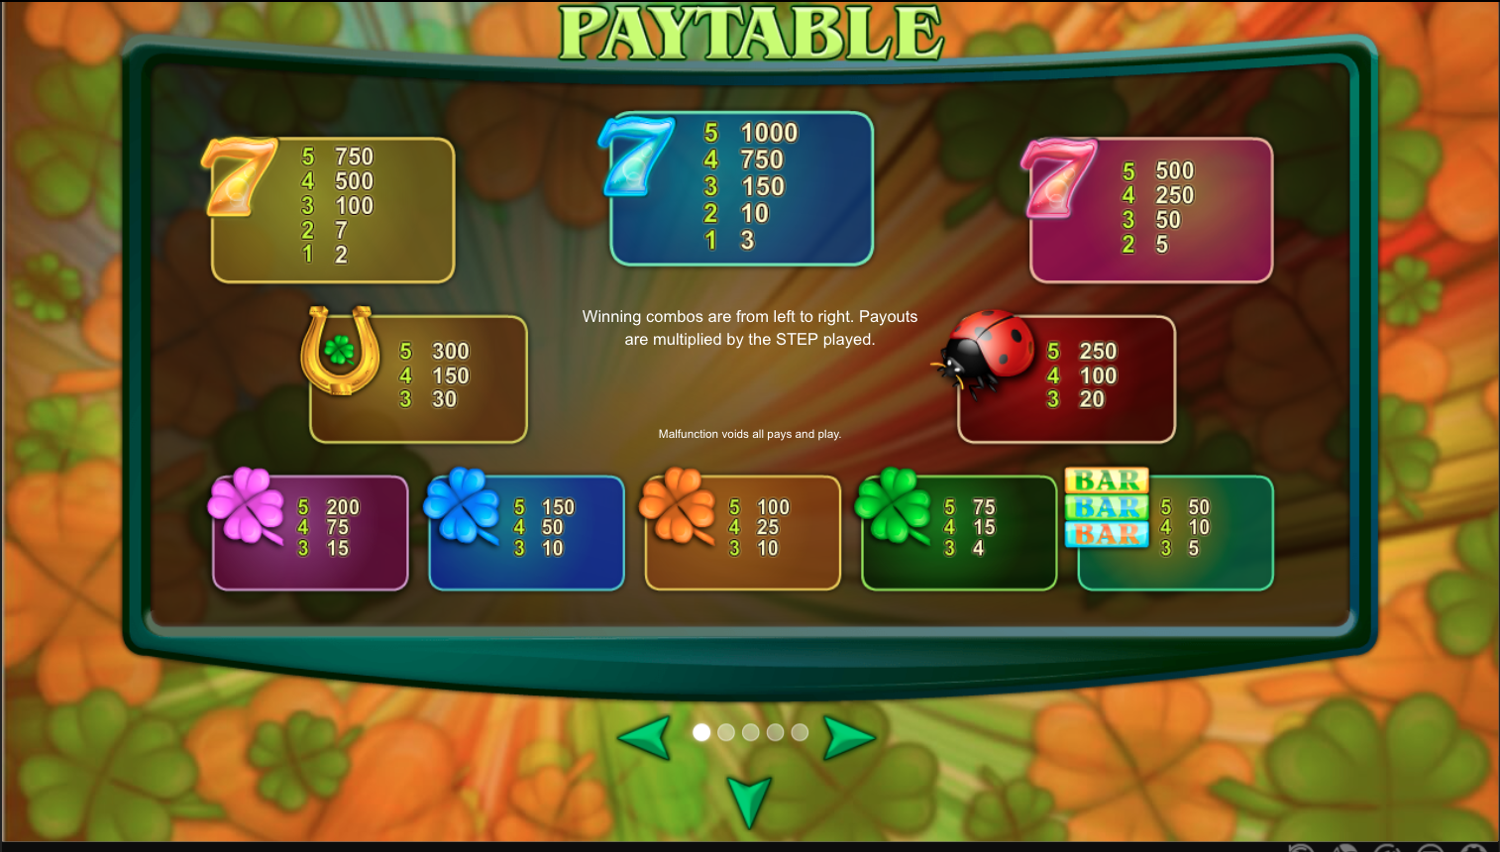 Lucky 7 base game paytable